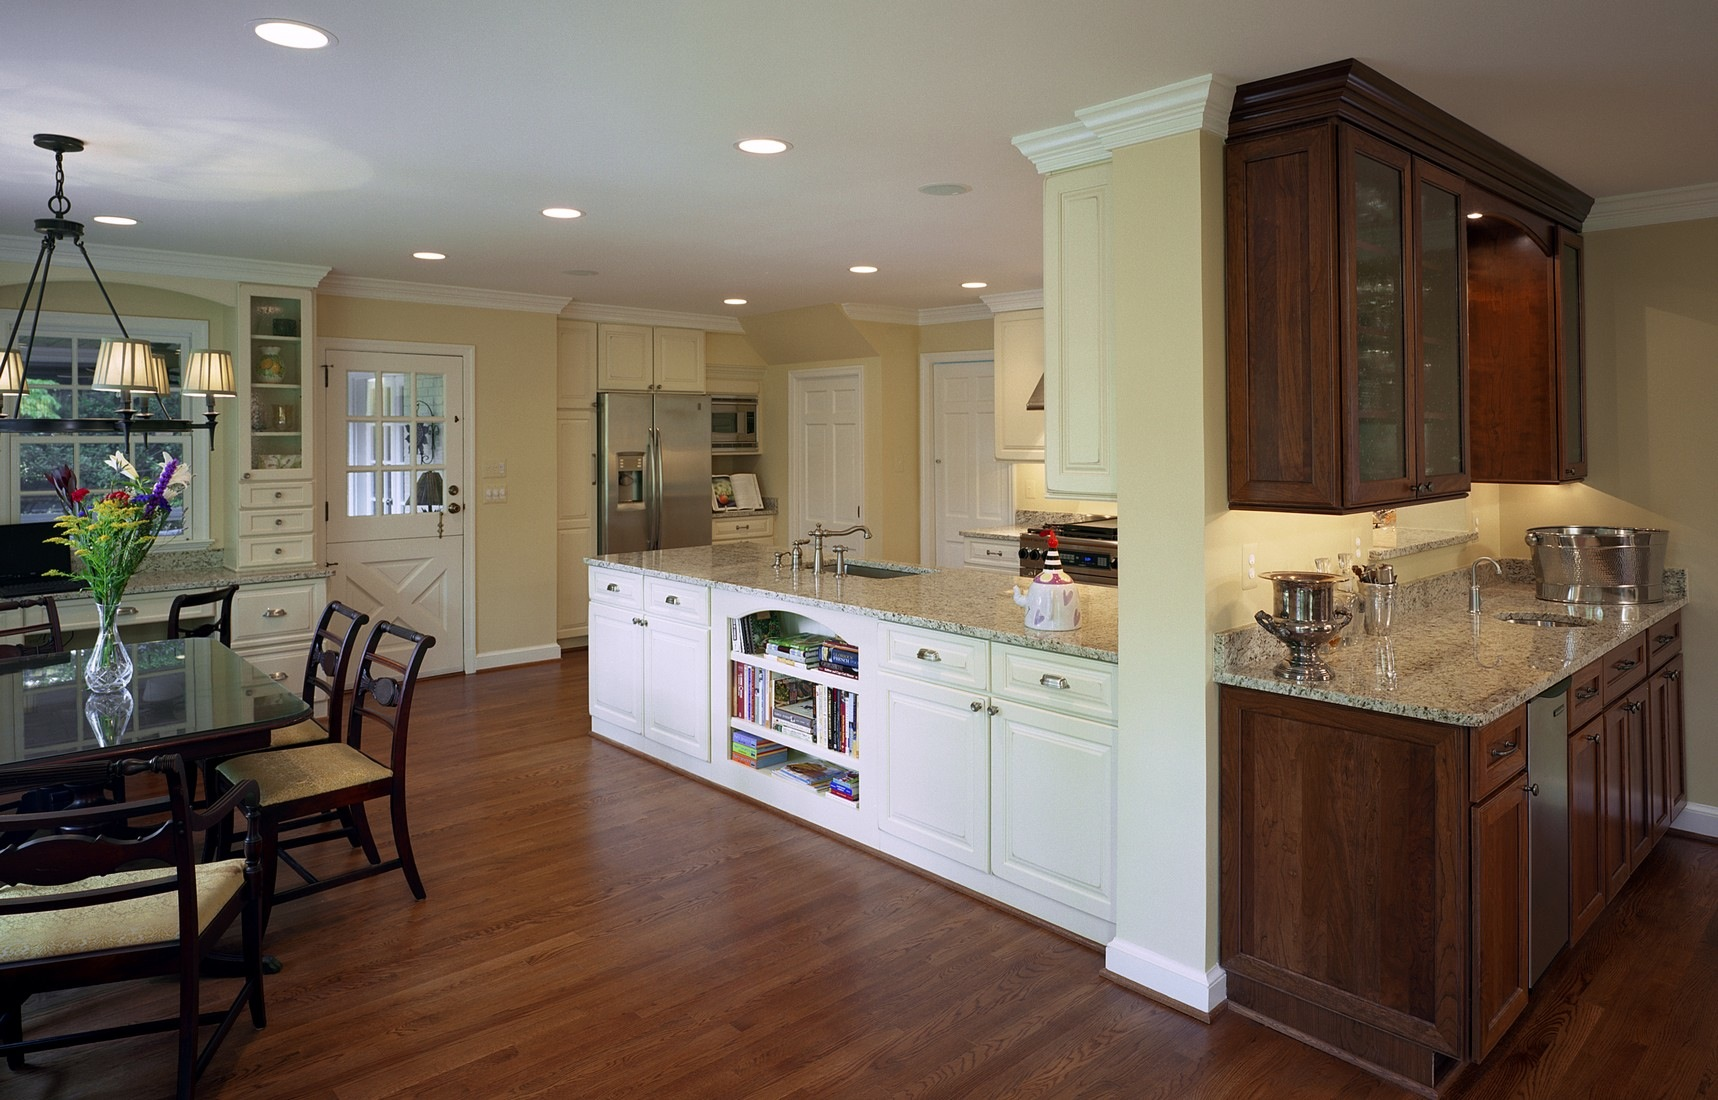 House Design Ideas >> Chevy Chase, Maryland Home Remodeling